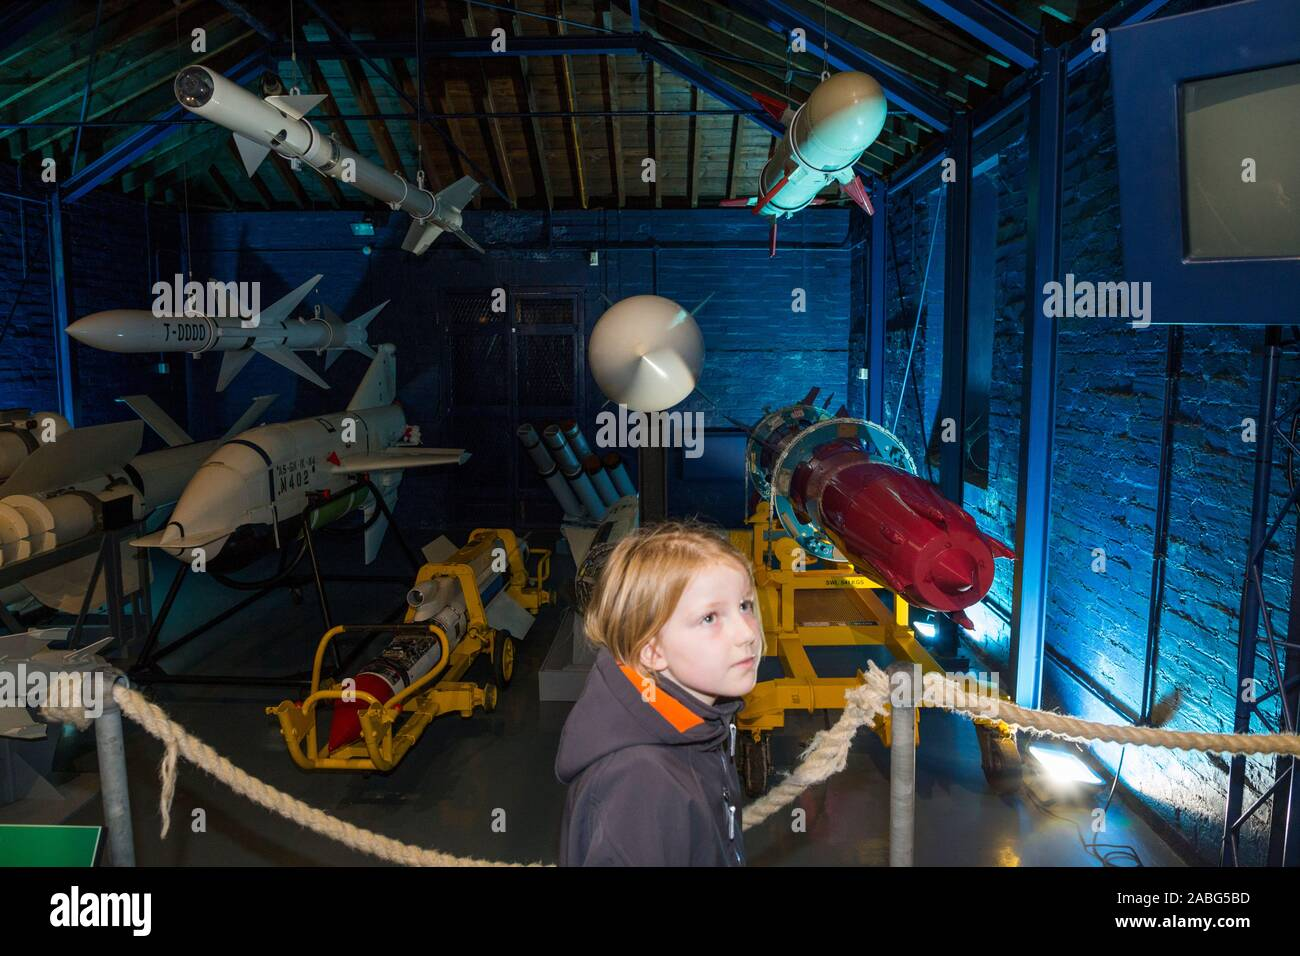 Arrangement display exhibition of vintage missiles and young girl tourist at the Explosion Museum of Naval Firepower; the Royal Navy's former armaments depot of Priddy's Hard, in Gosport. UK (105) Stock Photo